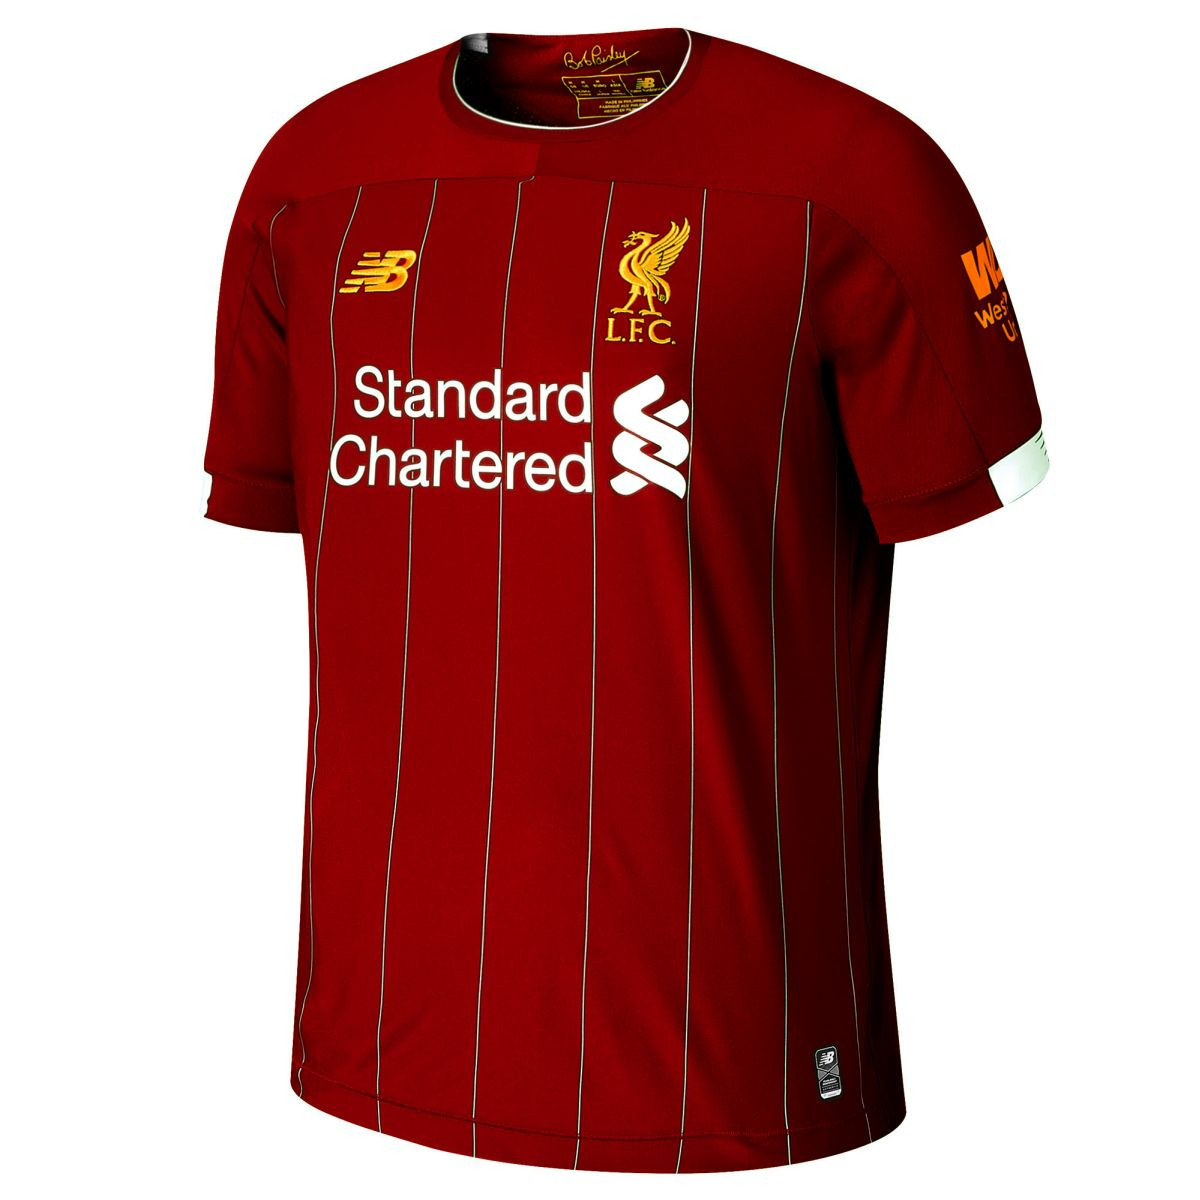 liverpool home jersey with your name 2019 20 new balance mt930000 name amstadion com liverpool home jersey with your name 2019 20 new balance